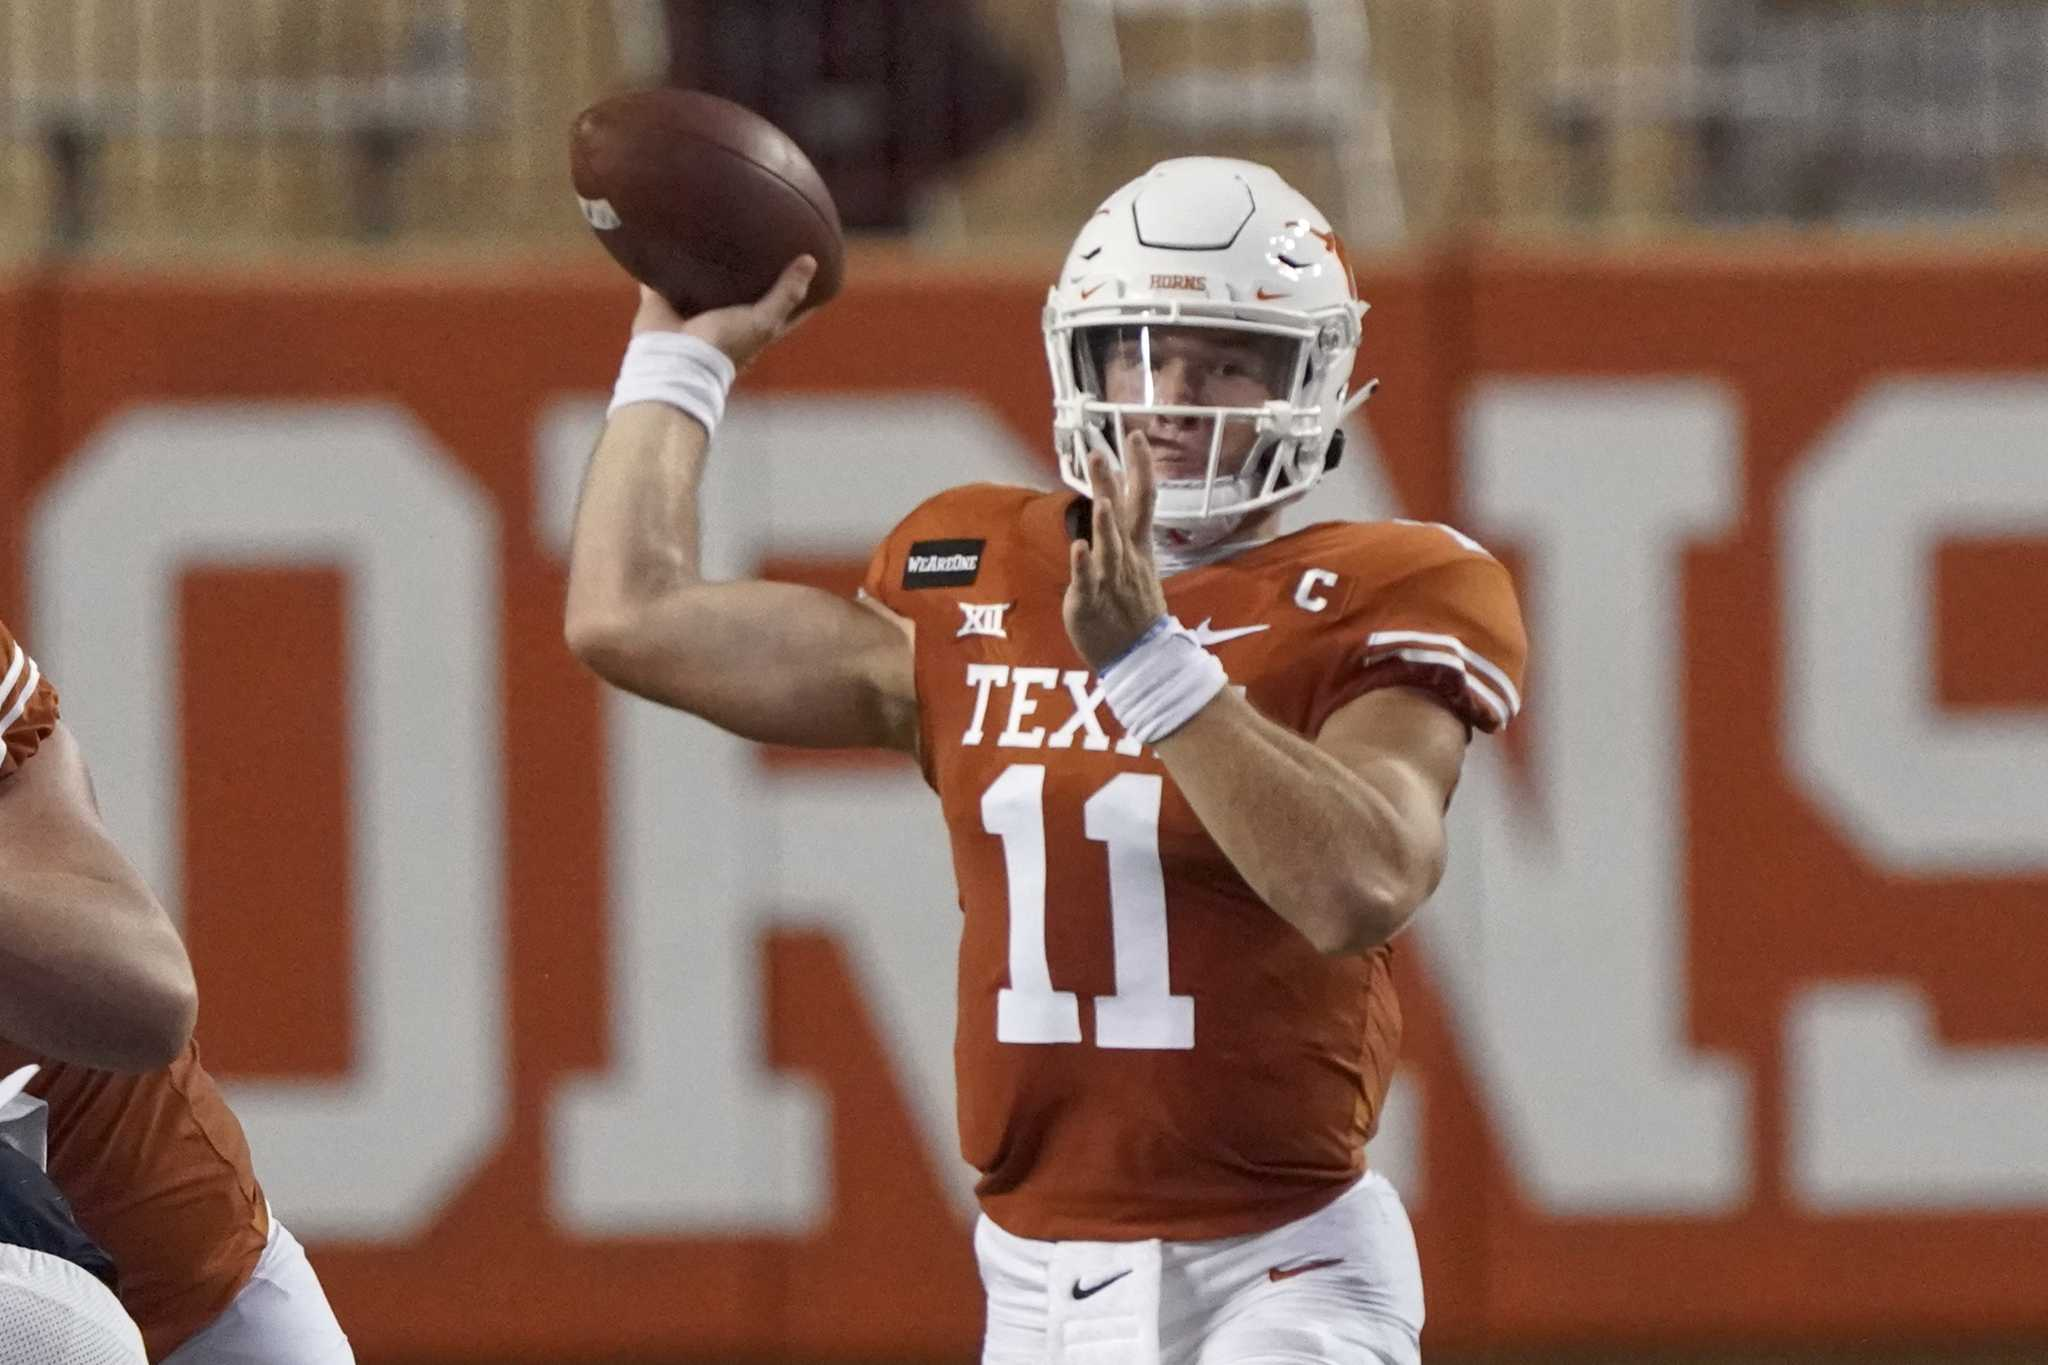 Texas Qb Sam Ehlinger Says He Can Do Better Than 426 Yards 5 Tds Houstonchronicle Com